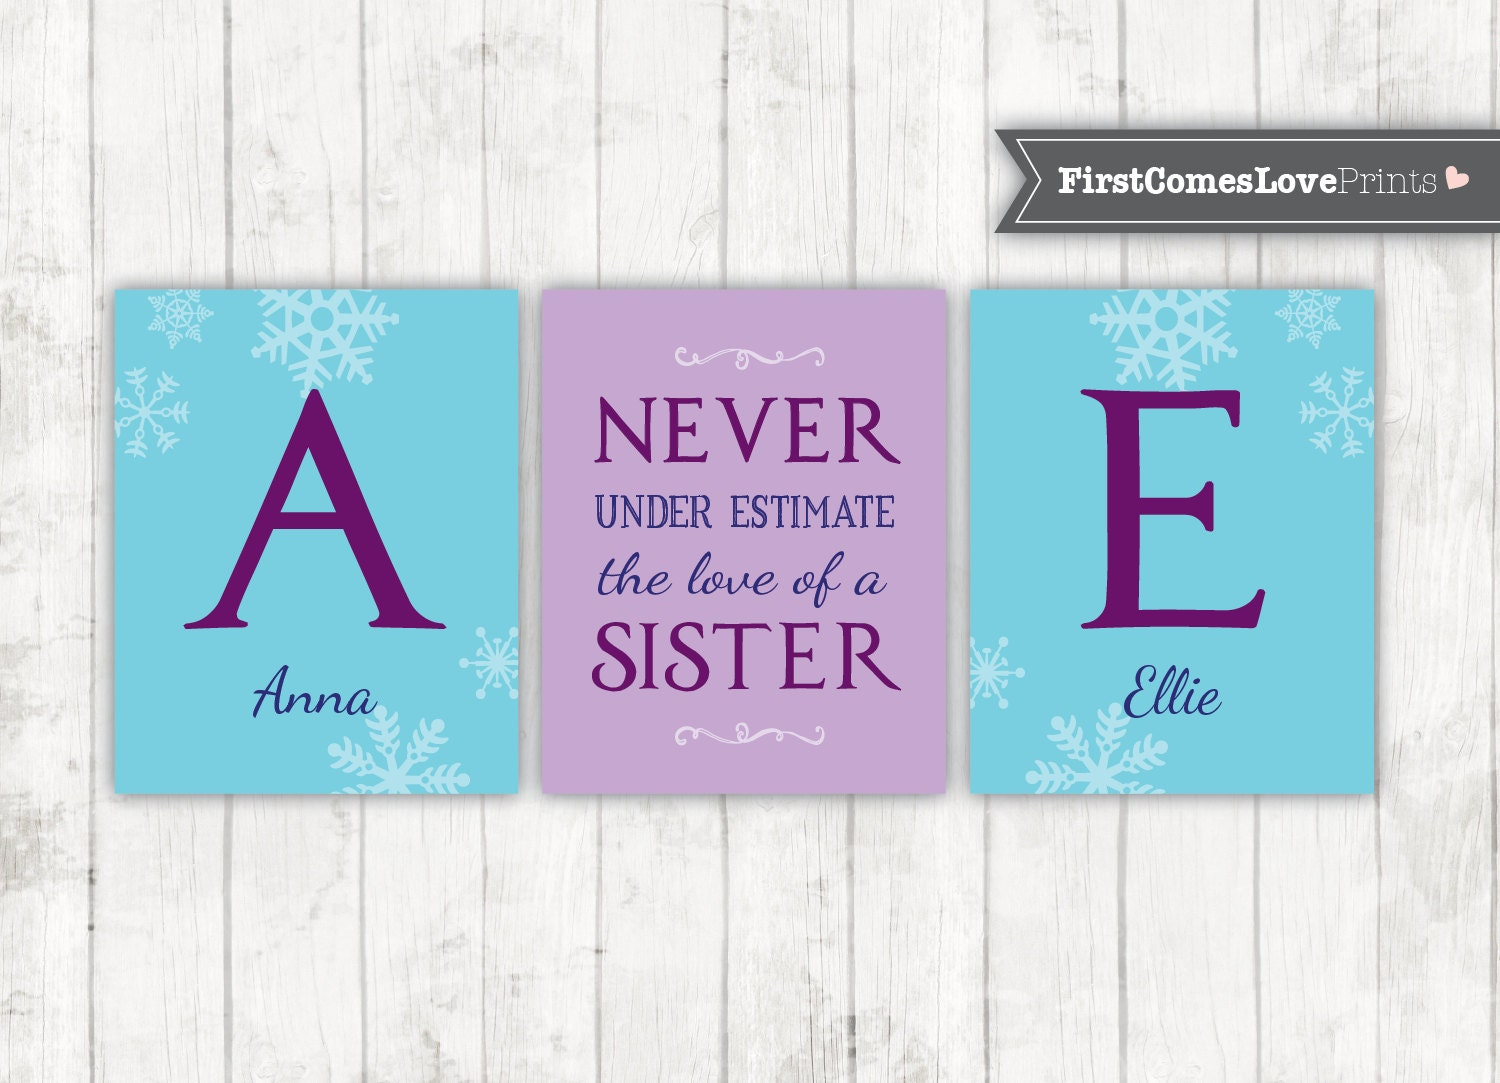 frozen quotes about sisters - digitalspace.info